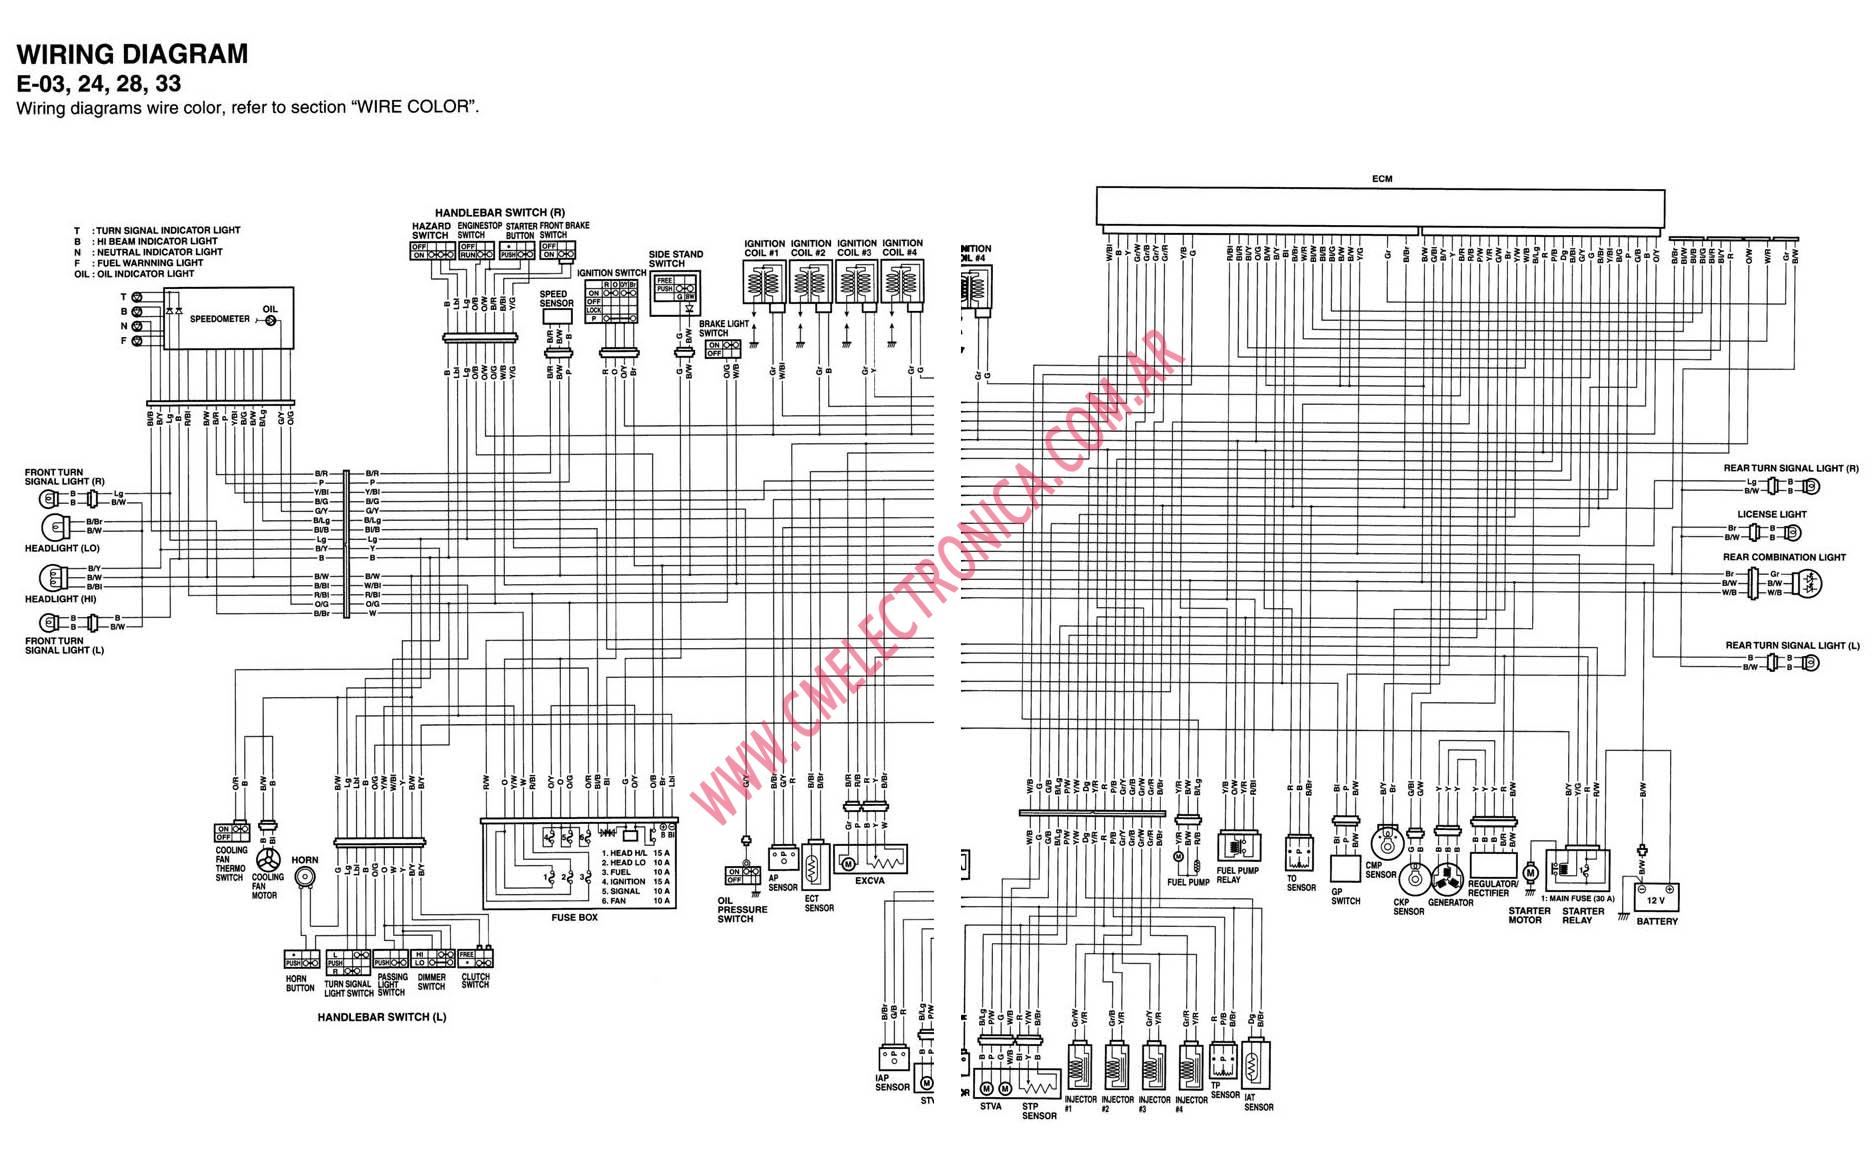 Suzuki Gsxr 1000 Wiring Diagram - DIY Wiring Diagrams •